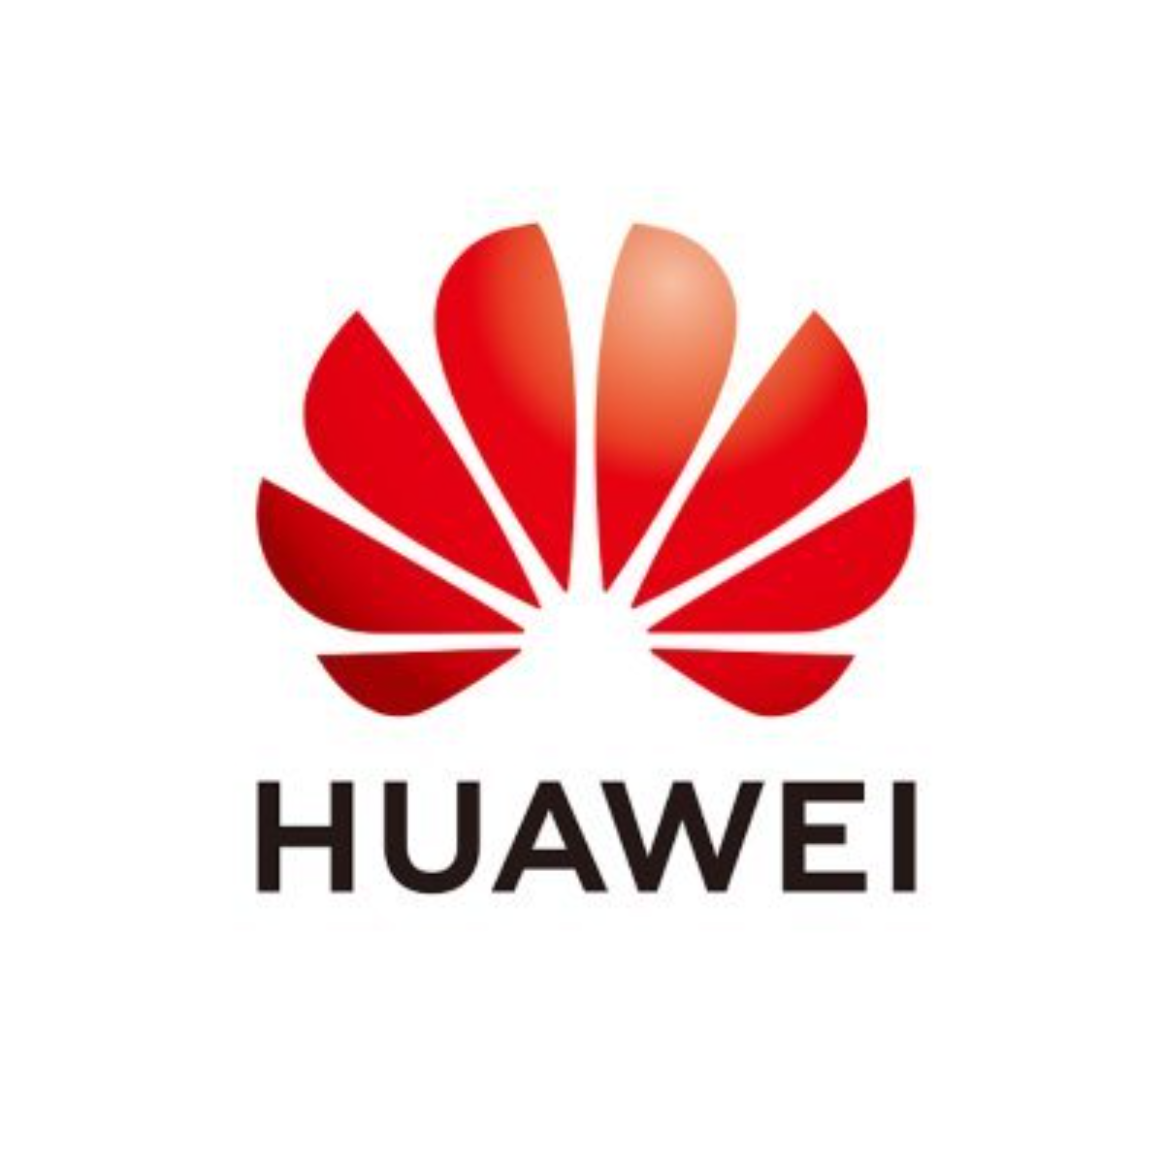 Huawei launched its self-developed operating system!